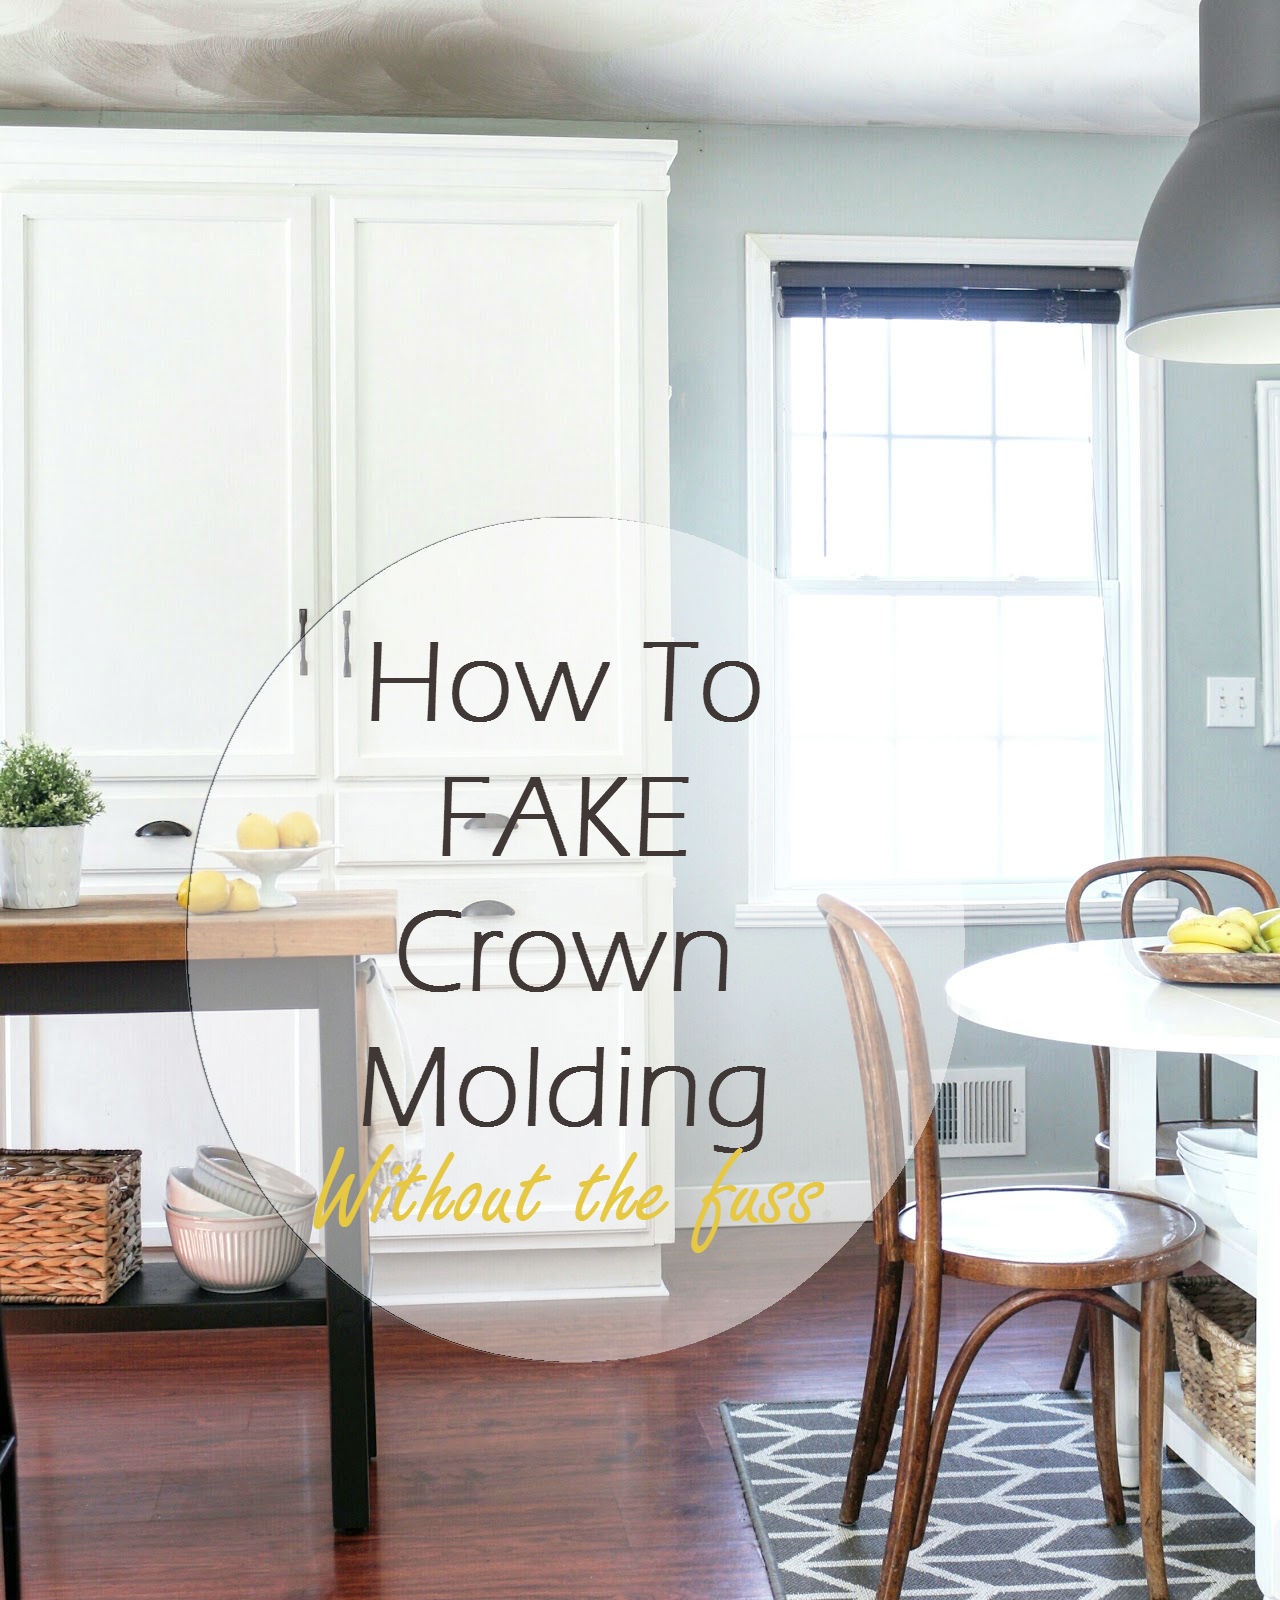 Kitchen cabinet crown molding designs - My Diy Kitchen Cabinet Crown Molding How To Fake The Look Without The Fuss